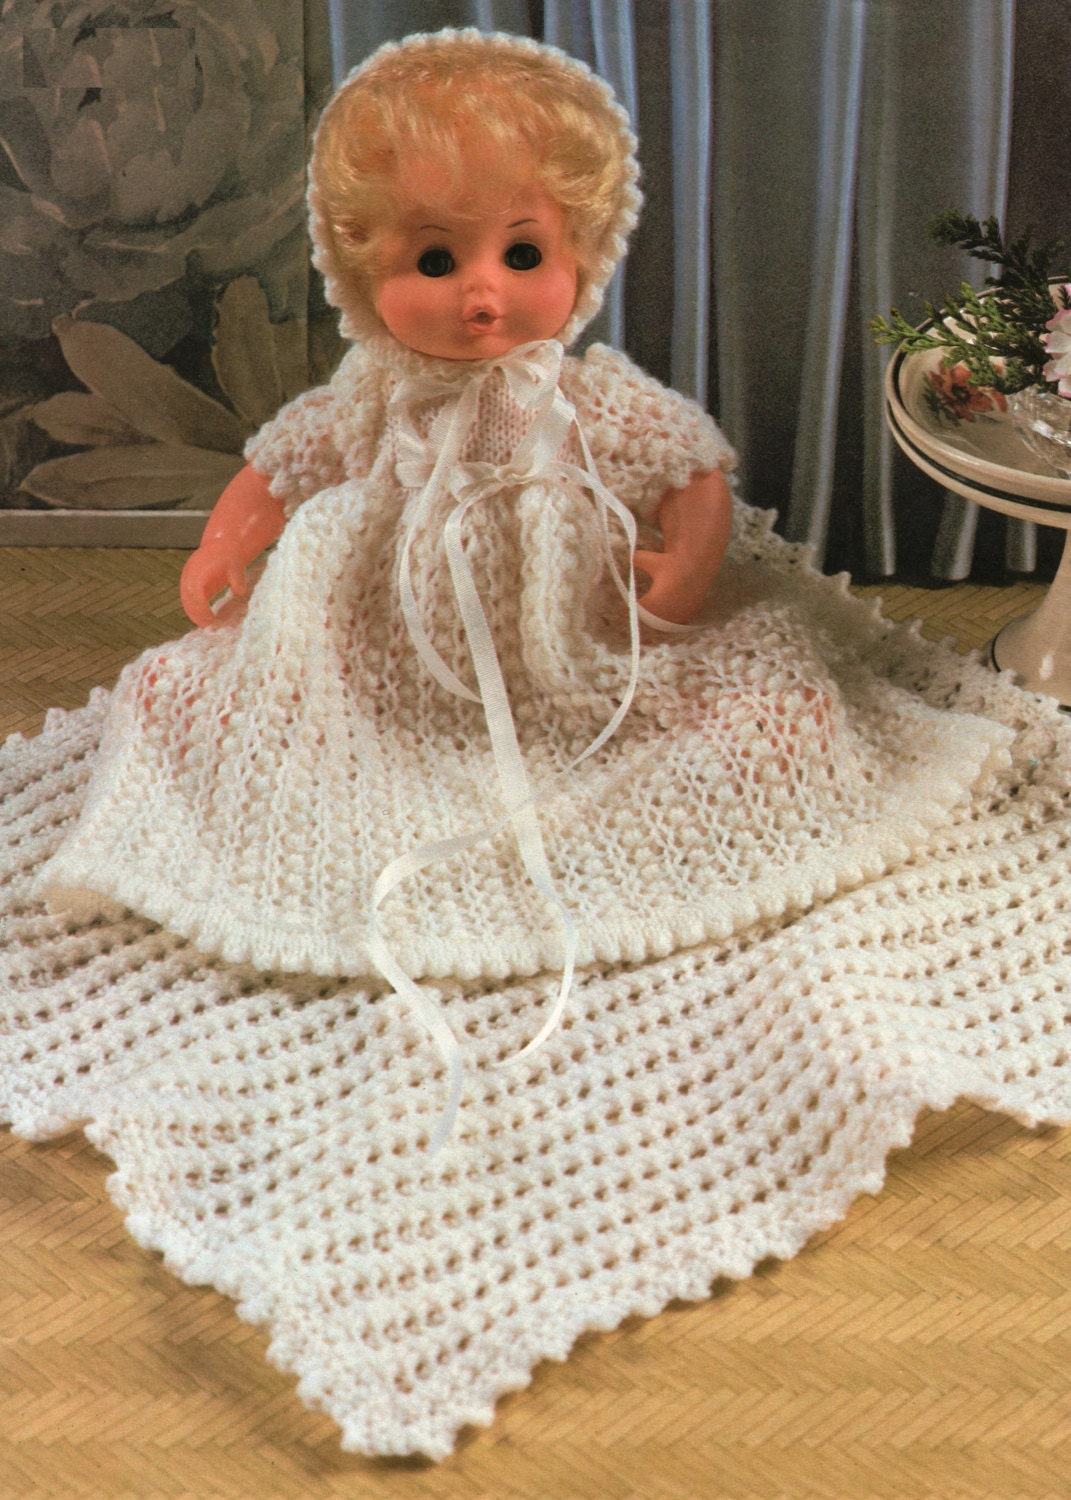 Post Free Knitting / Doll Clothes / 3plyYarn / Baby Dolls